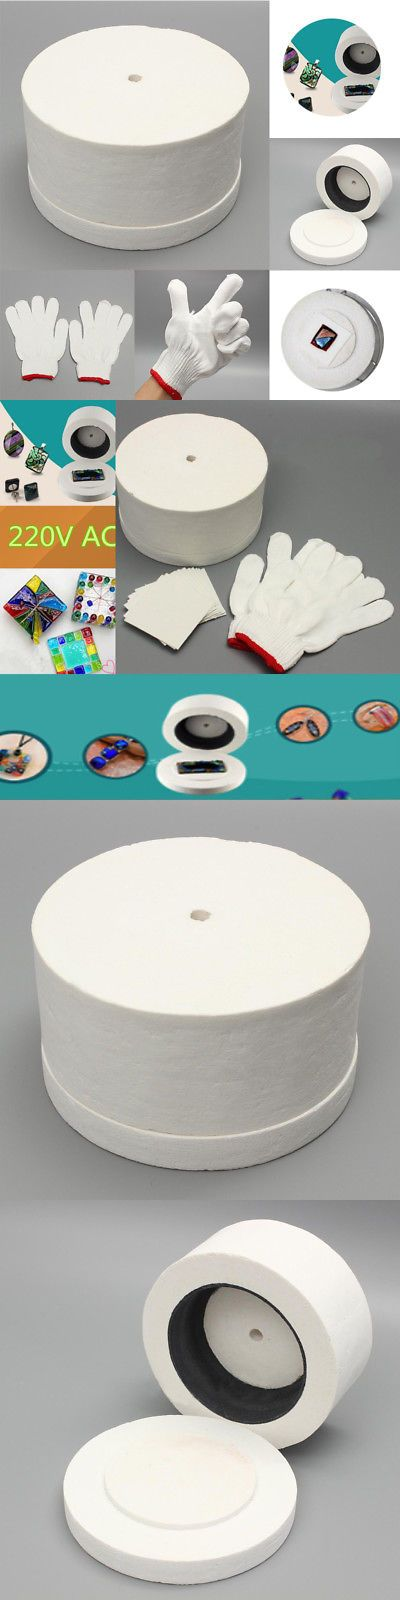 Other Glass Art Supplies 3099: 1 Large Microwave Kiln W 1 Pair Of White Cotton Gloves And 10Pcs Backing Papers -> BUY IT NOW ONLY: $39.99 on eBay!